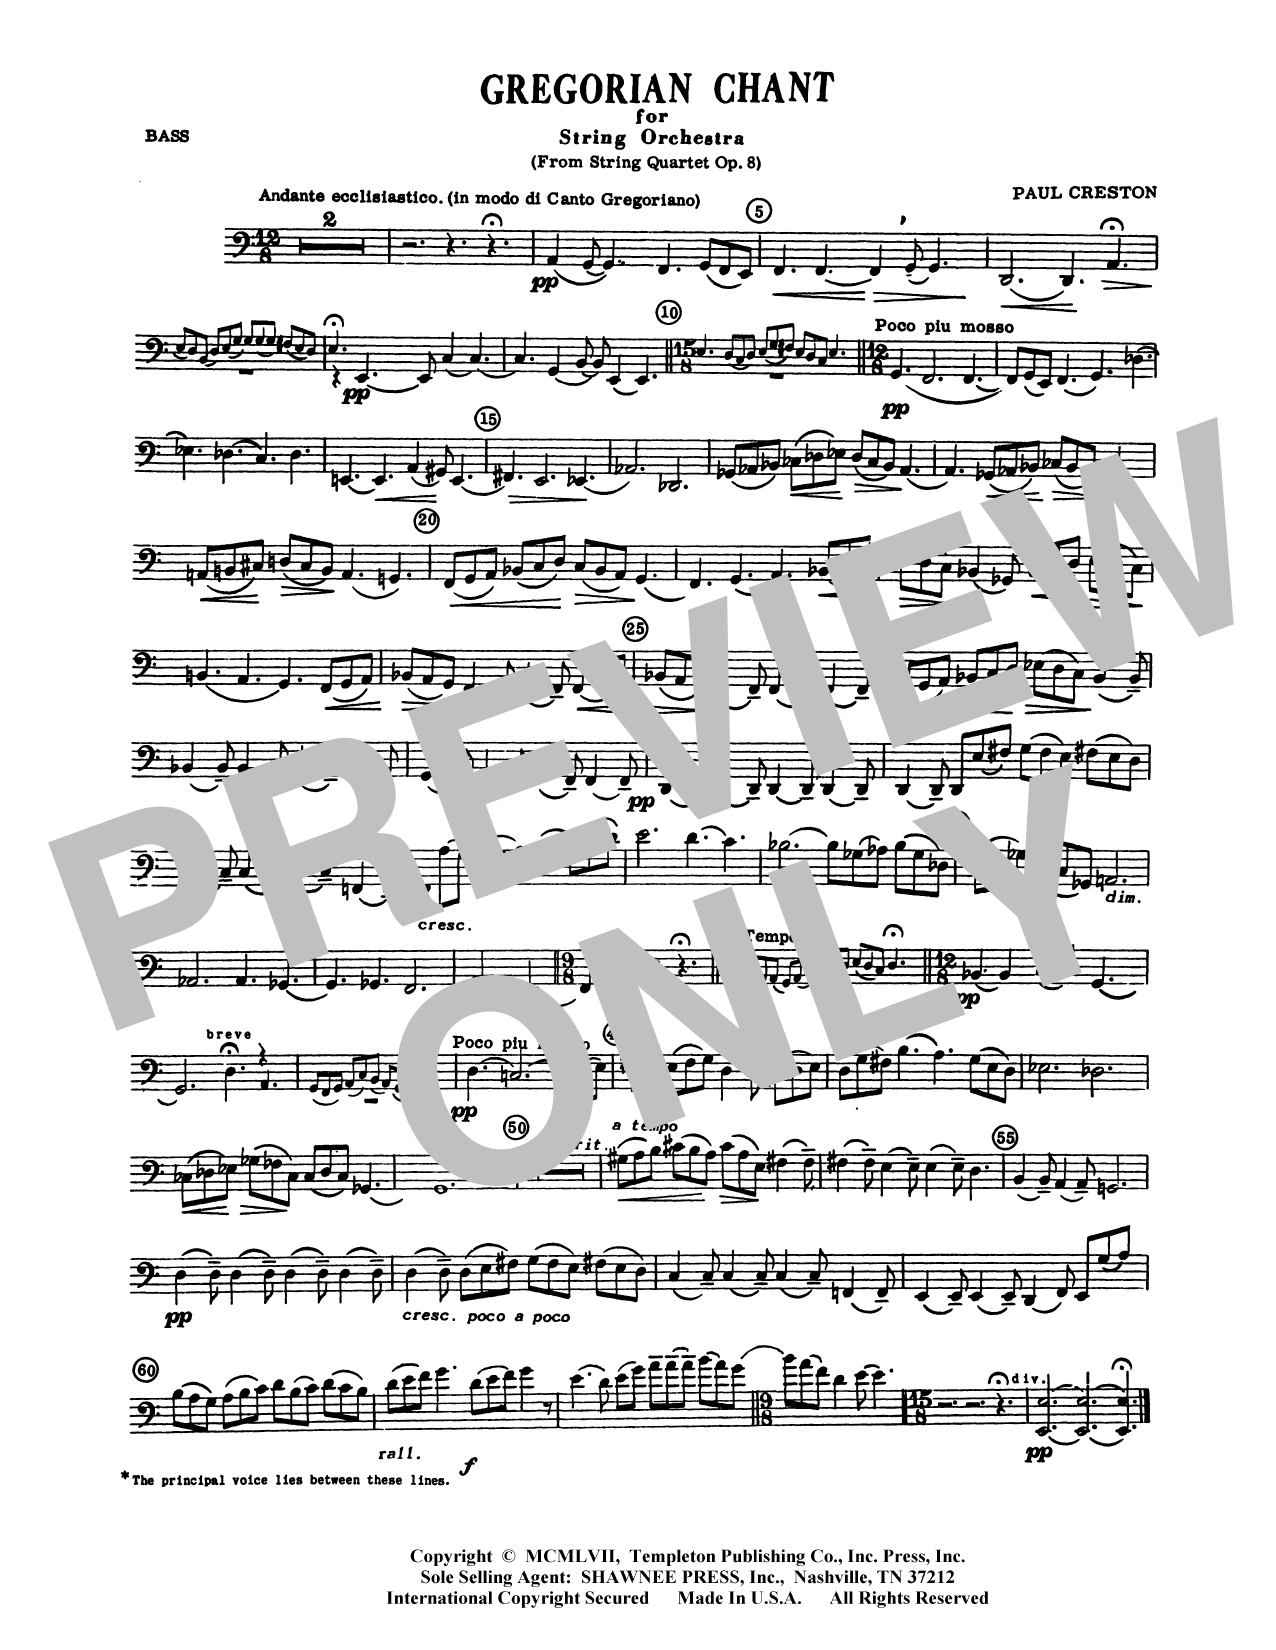 Paul Creston Gregorian Chant for String Orchestra - Bass sheet music preview music notes and score for Orchestra including 1 page(s)